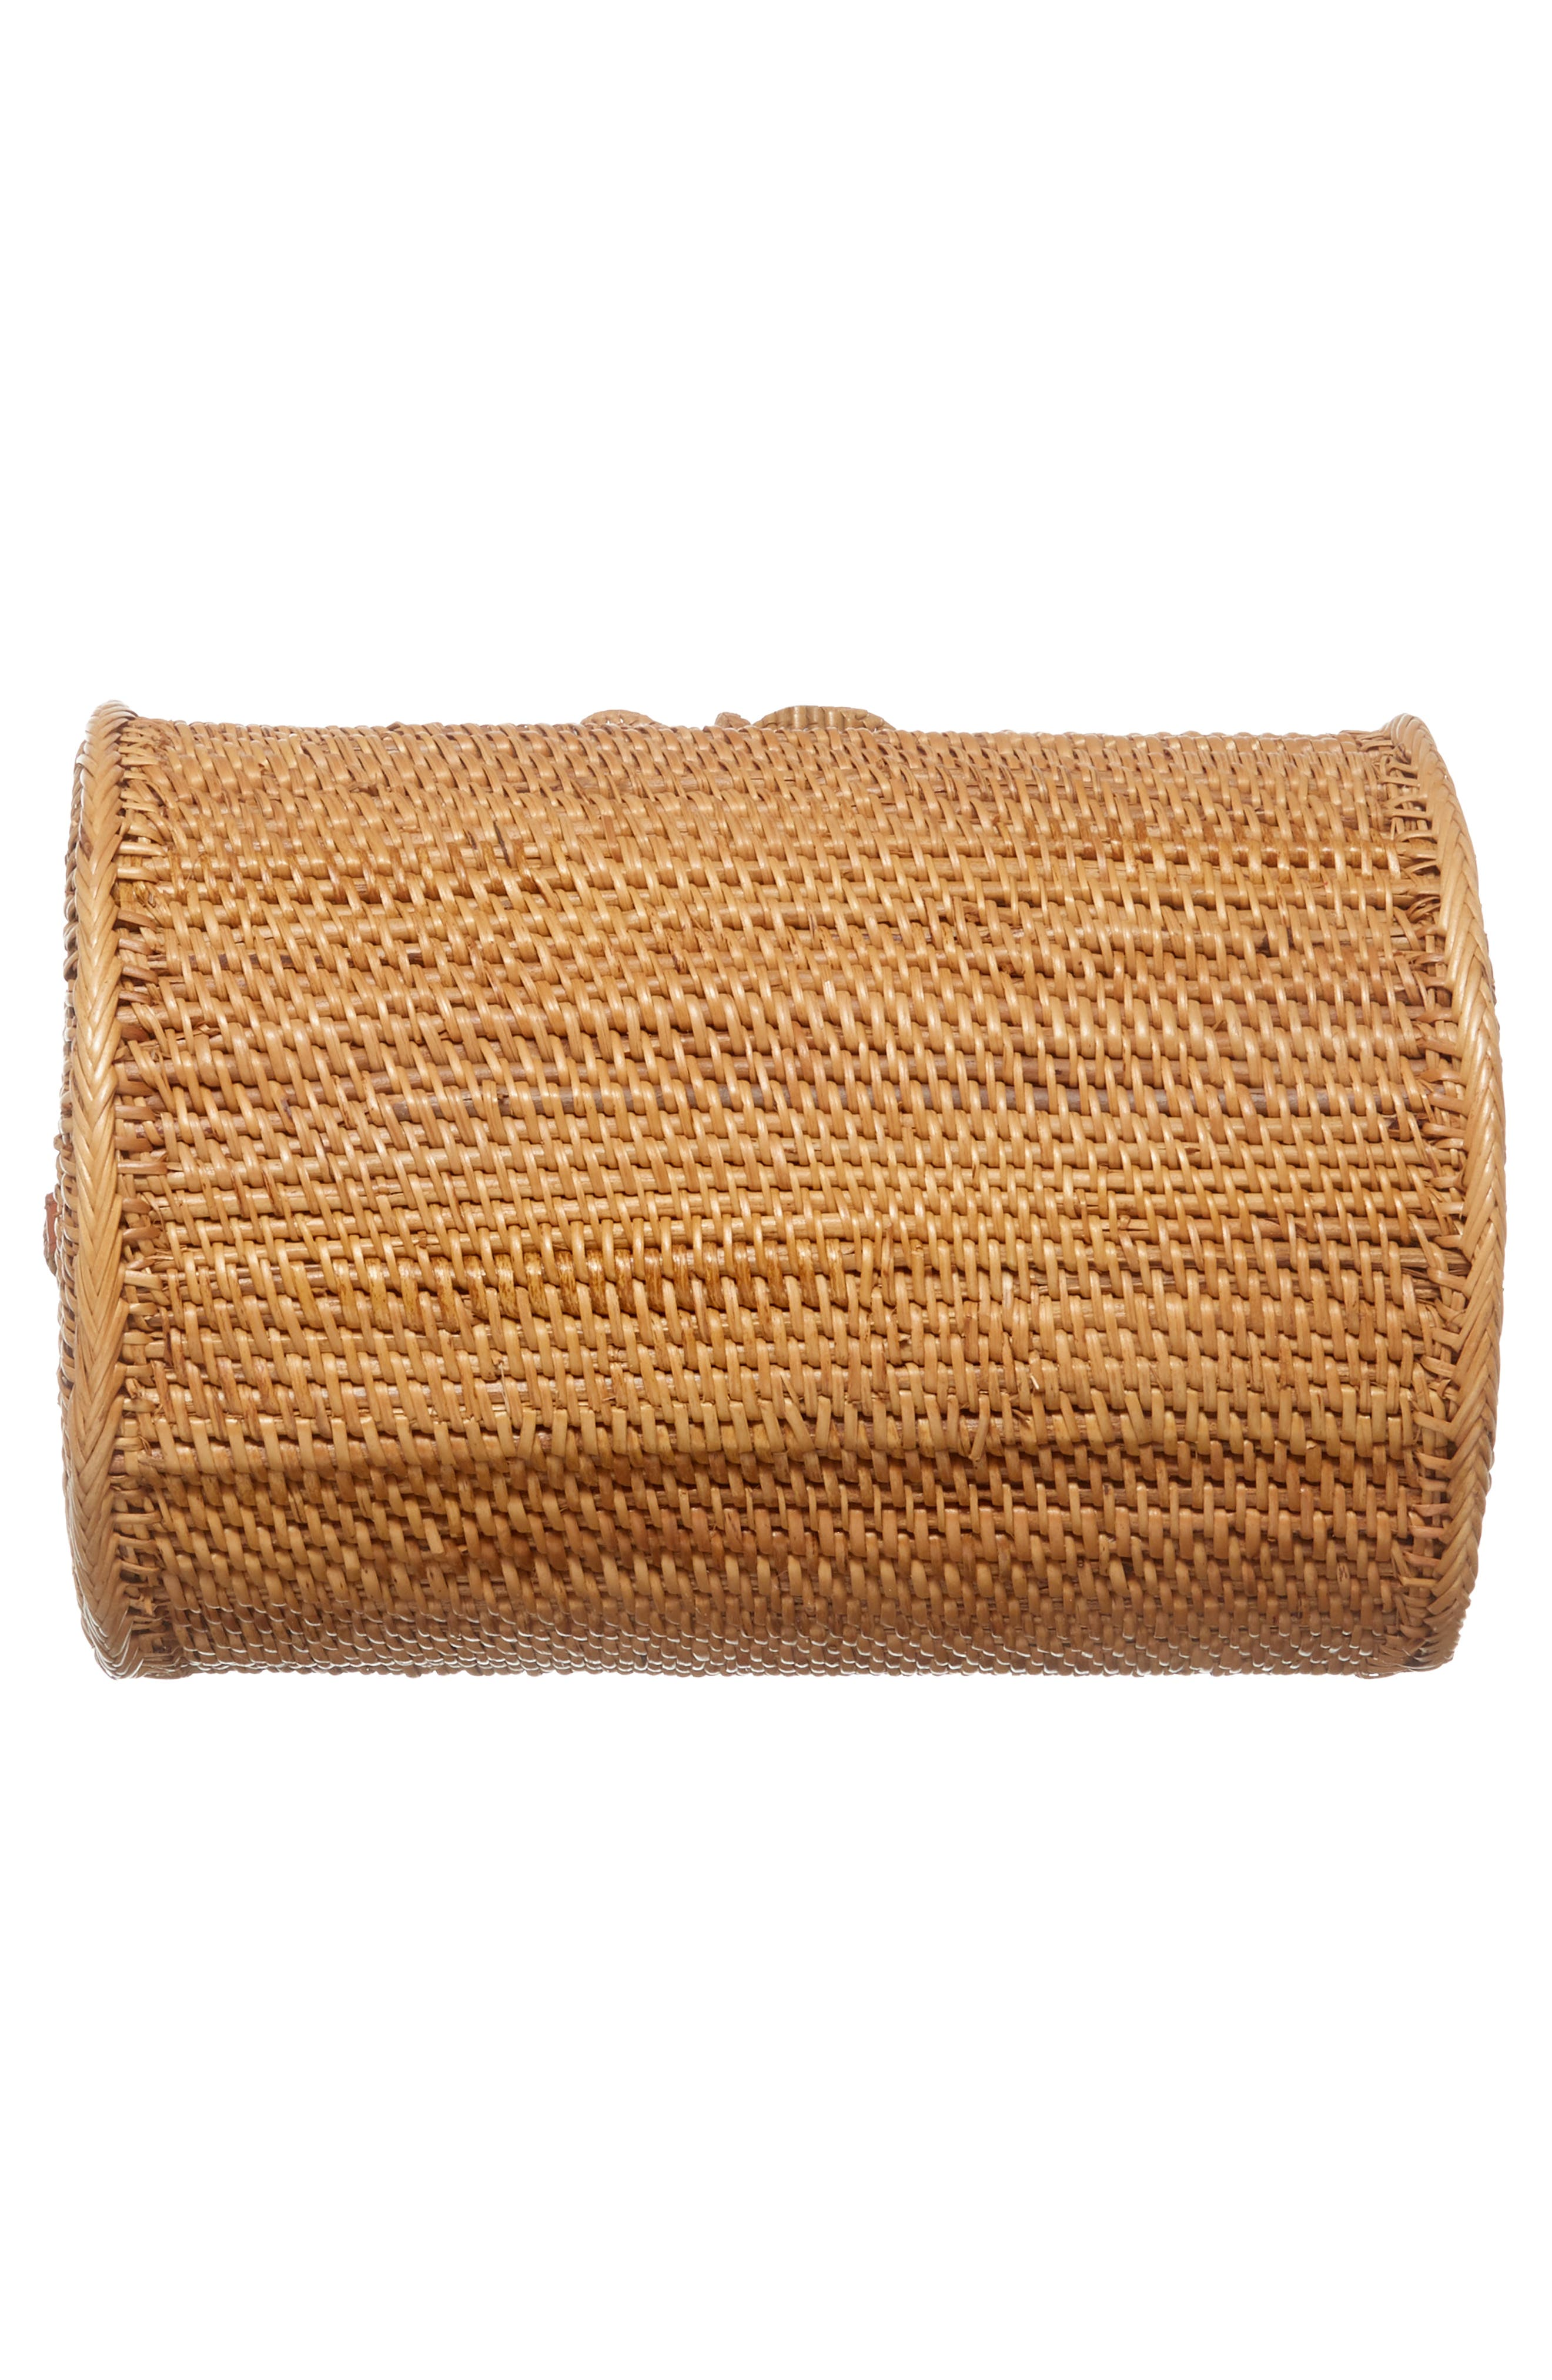 Cylinder Woven Crossbody Bag,                             Alternate thumbnail 6, color,                             Tan